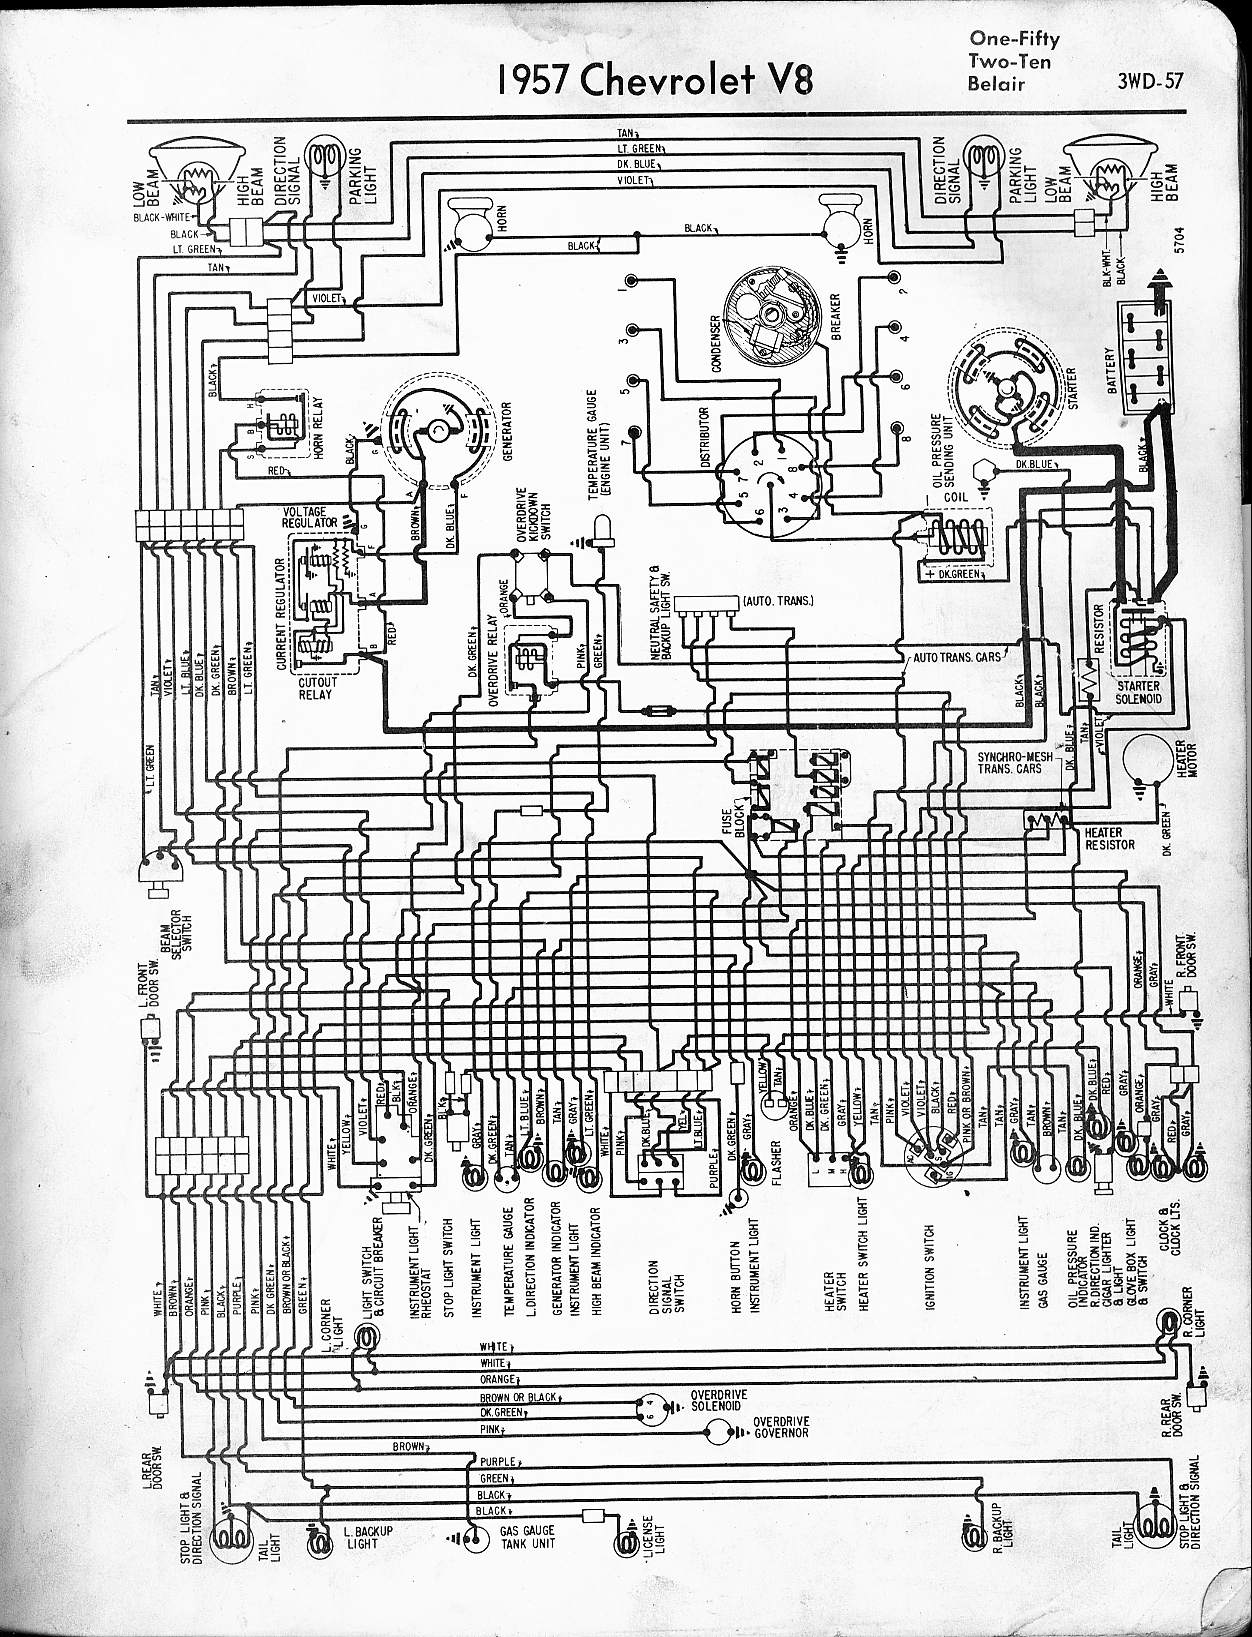 MWireChev57_3WD 057 1955 chevy wiring diagram 1955 pontiac wiring diagram \u2022 free 57 Chevy Wiring Diagram at alyssarenee.co